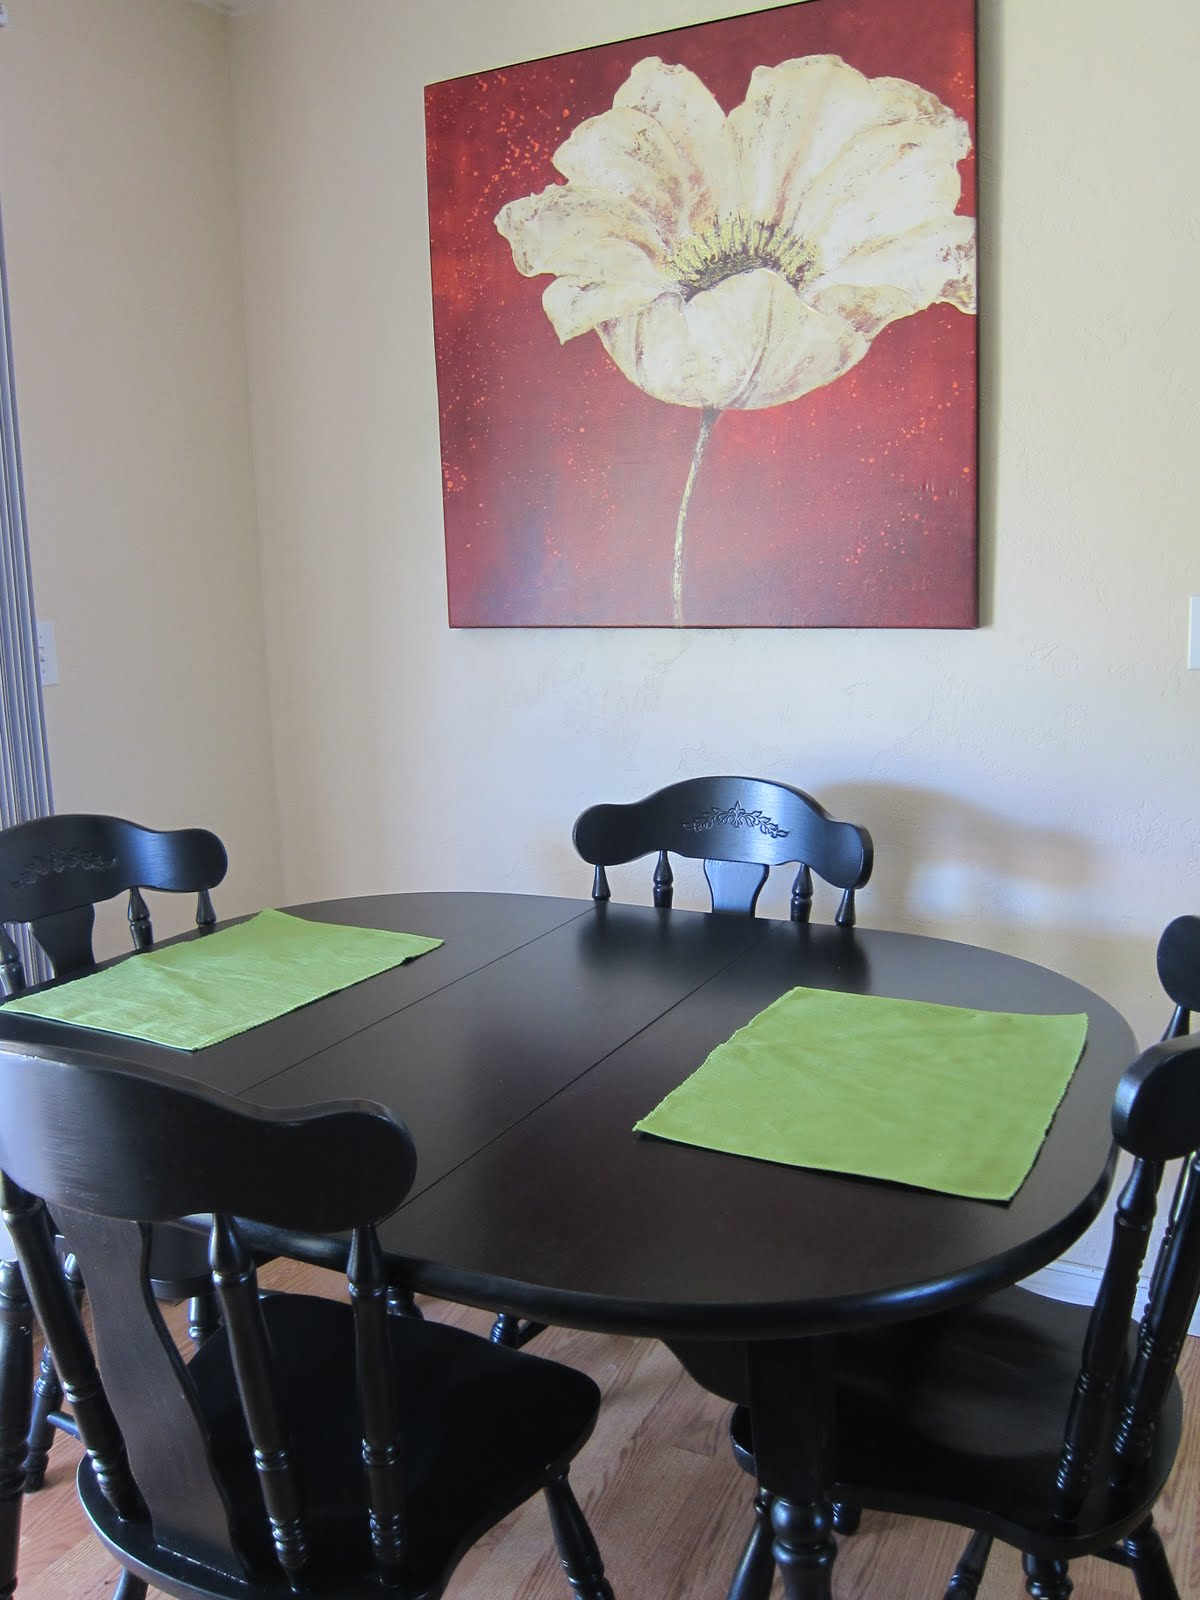 Dorese S Pieces Refinishing Project Kitchen Table And Chairs